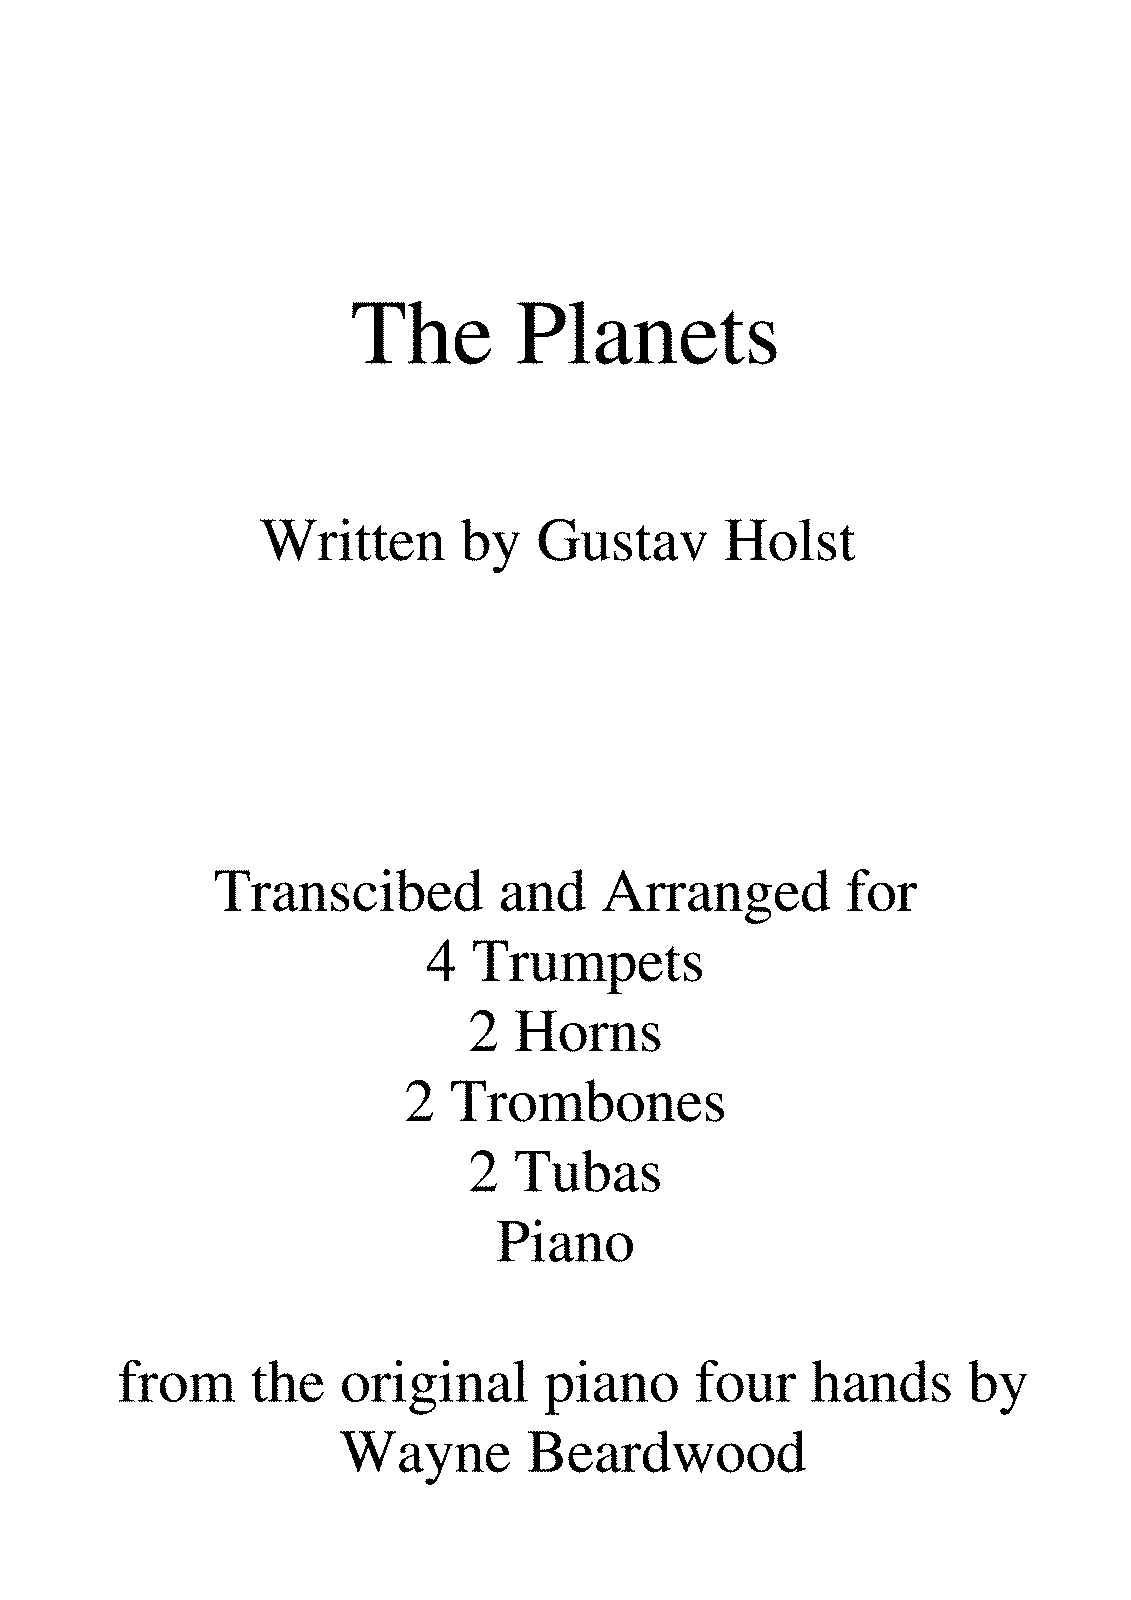 PMLP33488-The Planets Complete Score.pdf